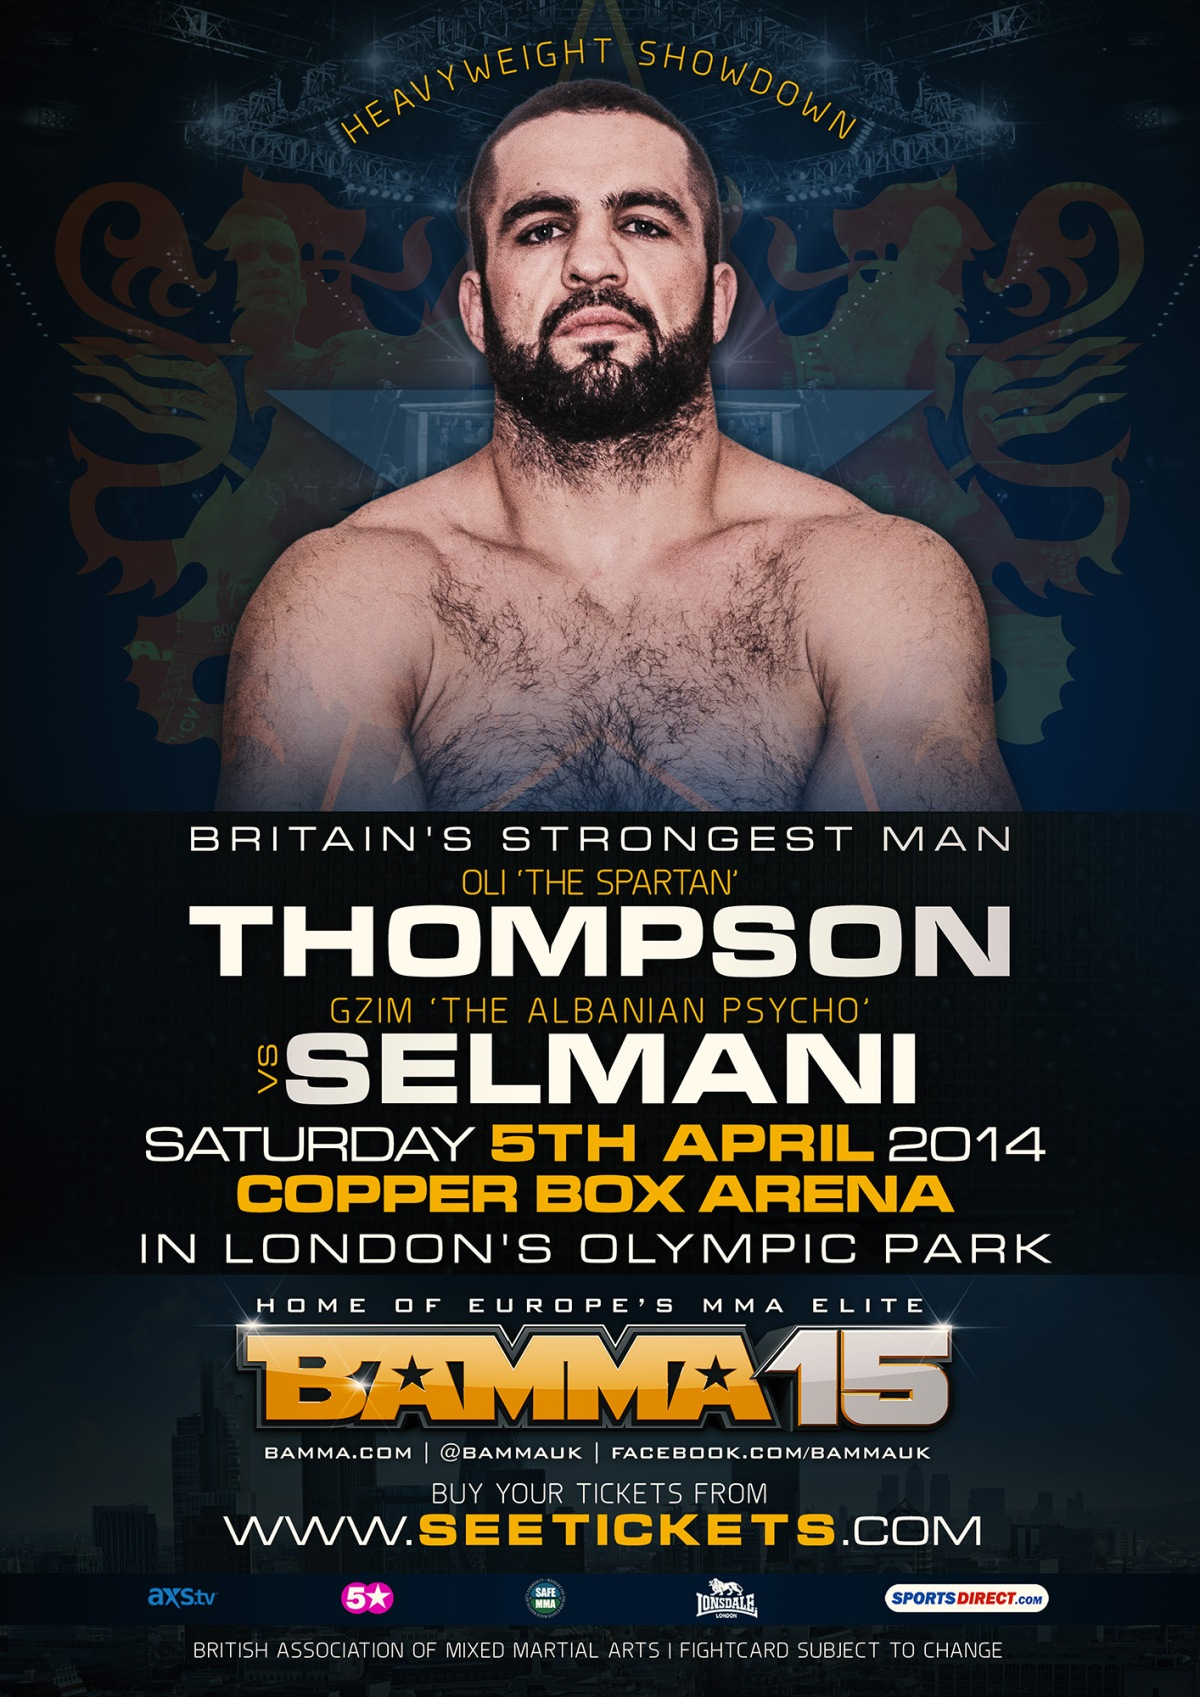 OLI THOMPSON VS GZIM 'ALBANIAN PSYCHO' SELMANI FOR BAMMA 15 (UK)